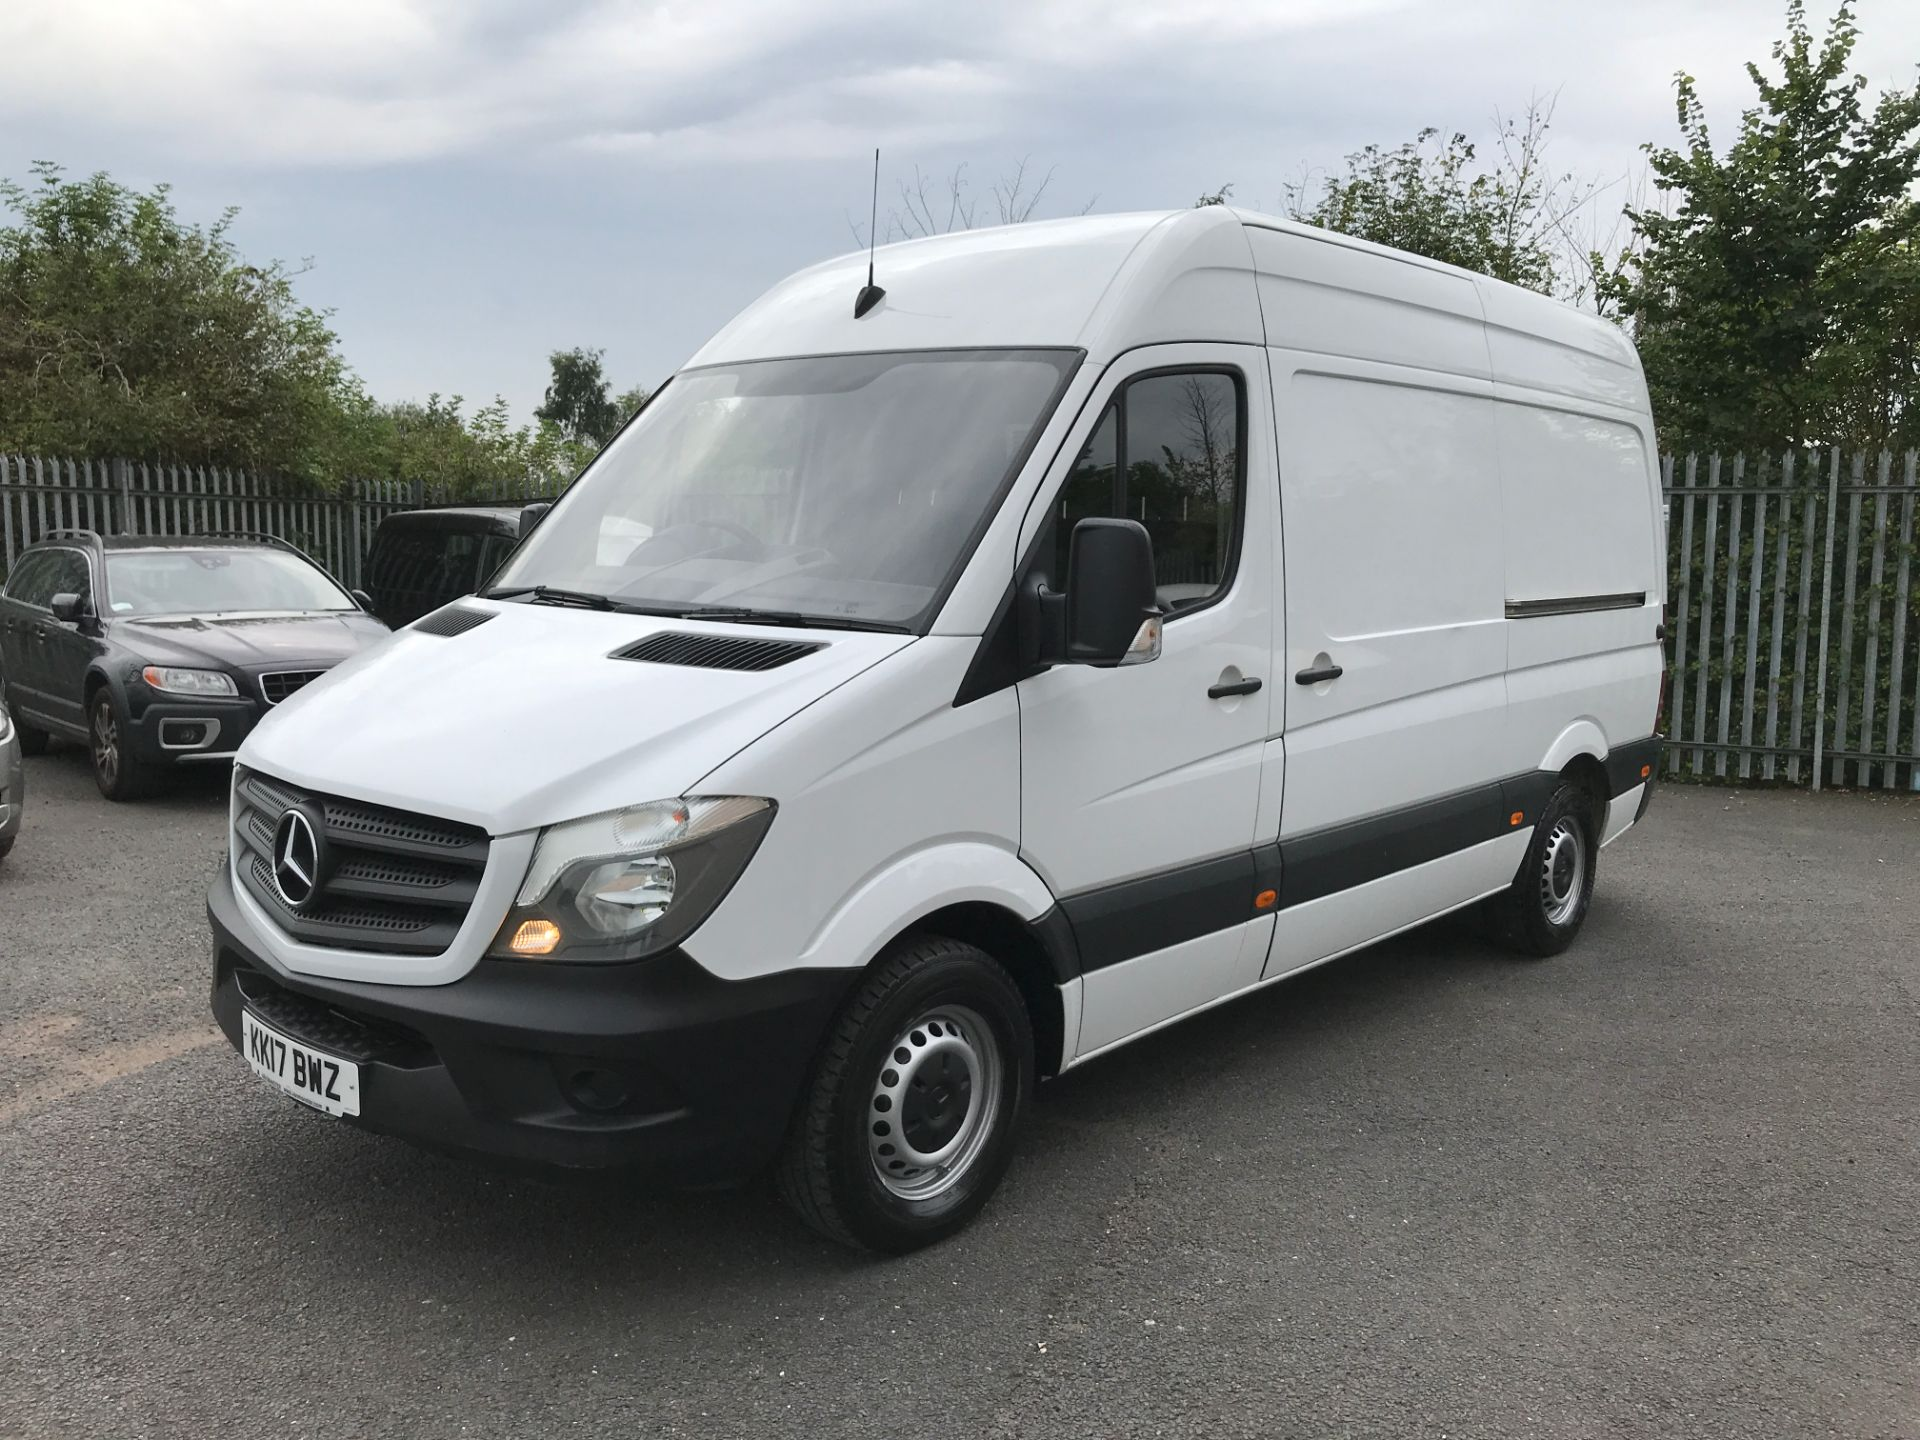 2017 Mercedes-Benz Sprinter 314CDI MWB HIGH ROOF 140PS EURO 6 (KK17BWZ) Image 13